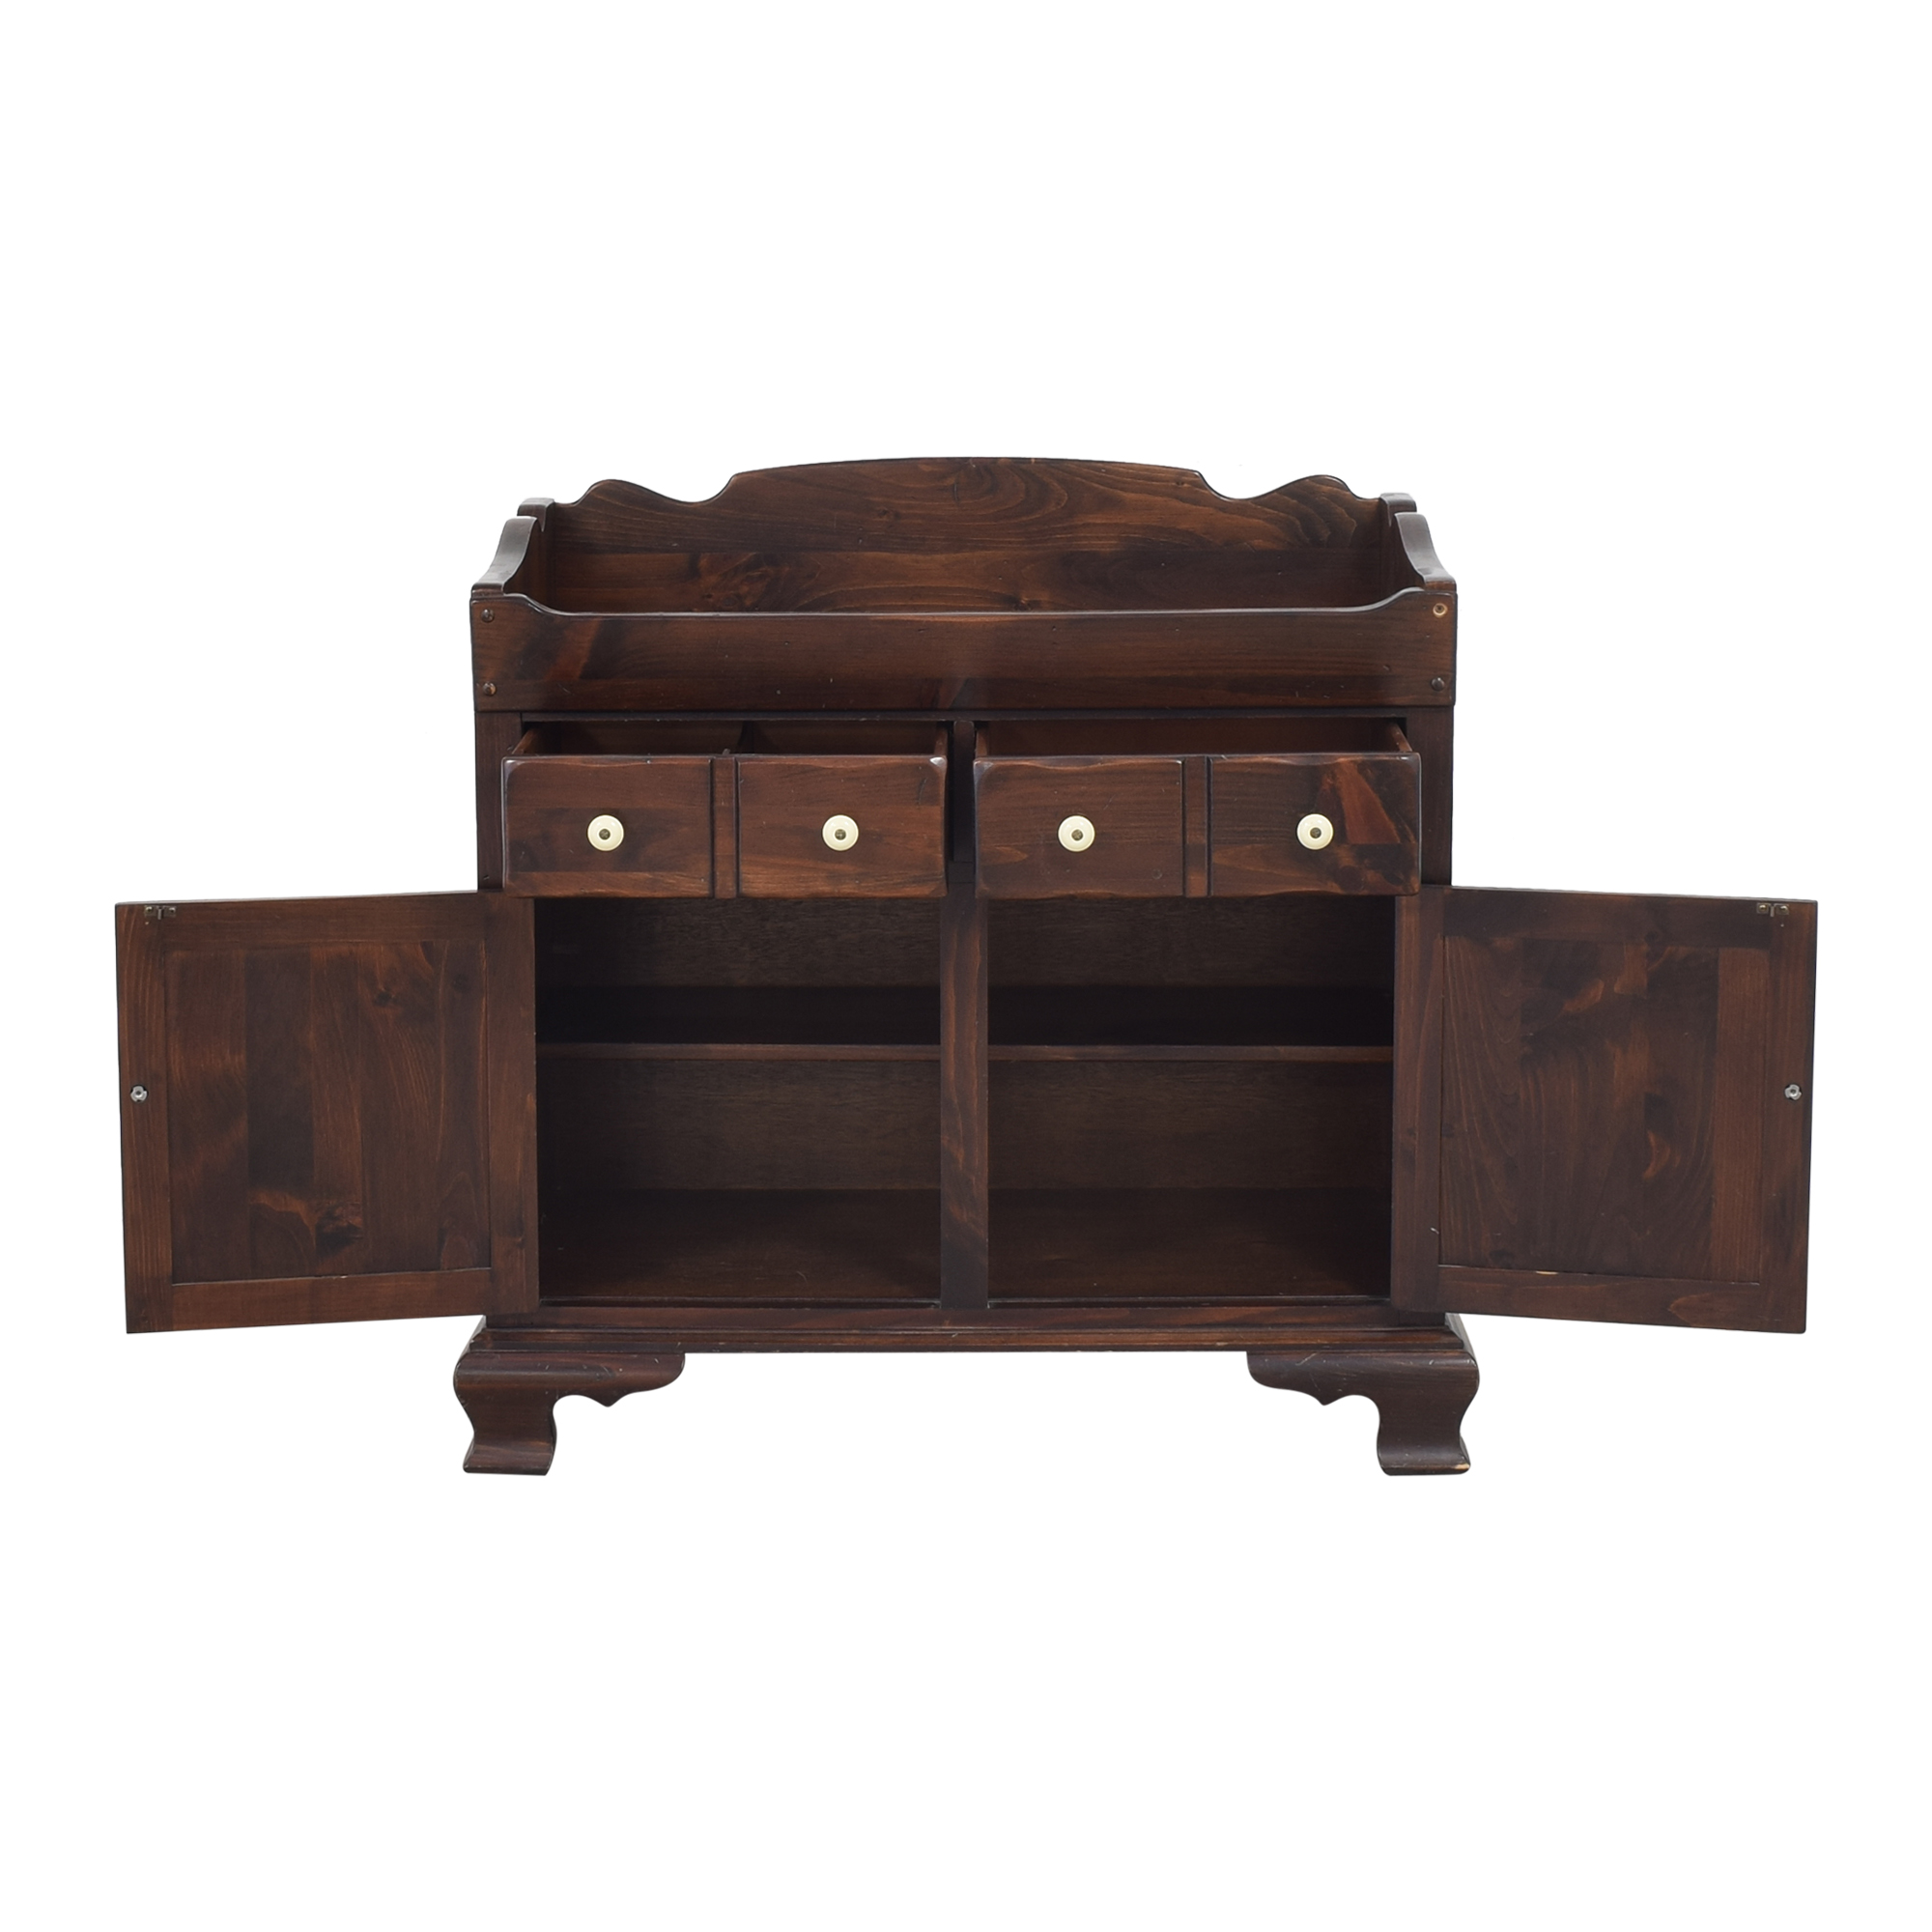 Ethan Allen Ethan Allen Colonial-Style Dry Sink Cabinet price